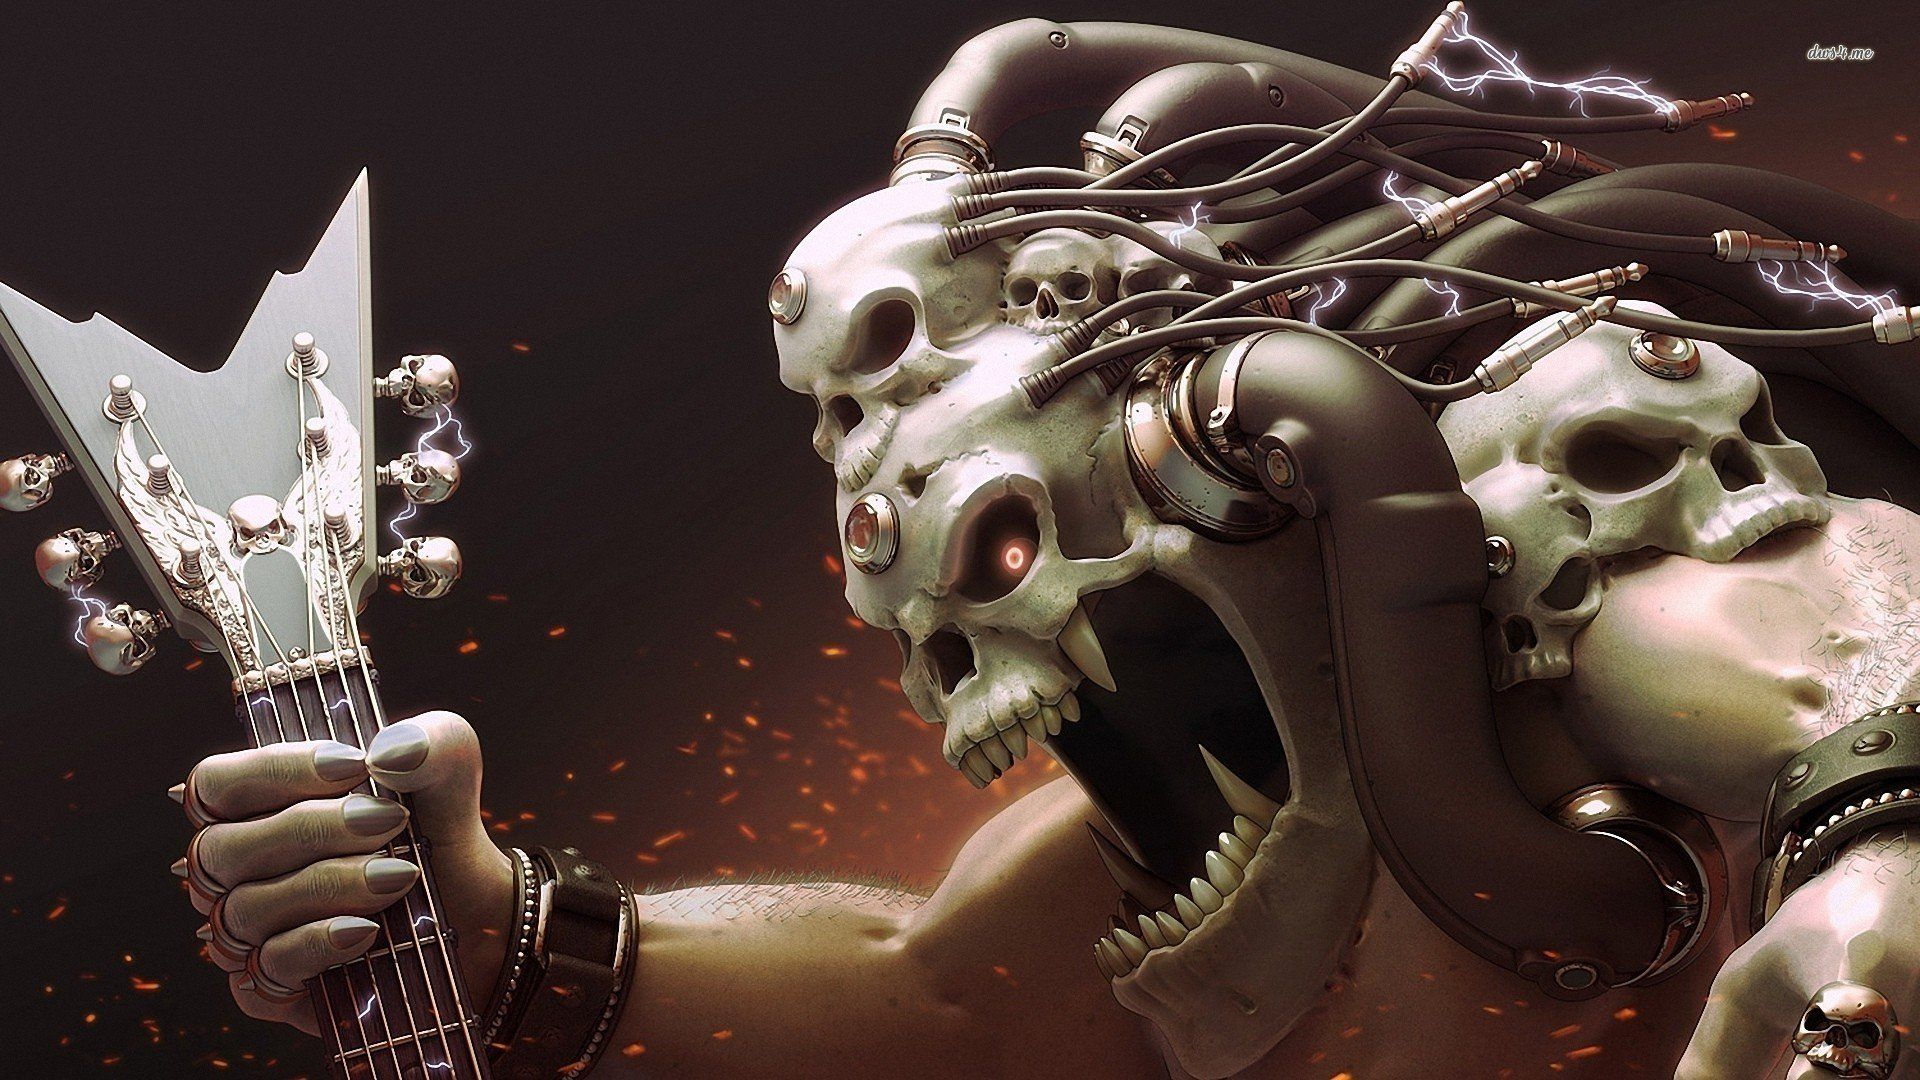 rocker skeleton wallpaper » walldevil - best free hd desktop and